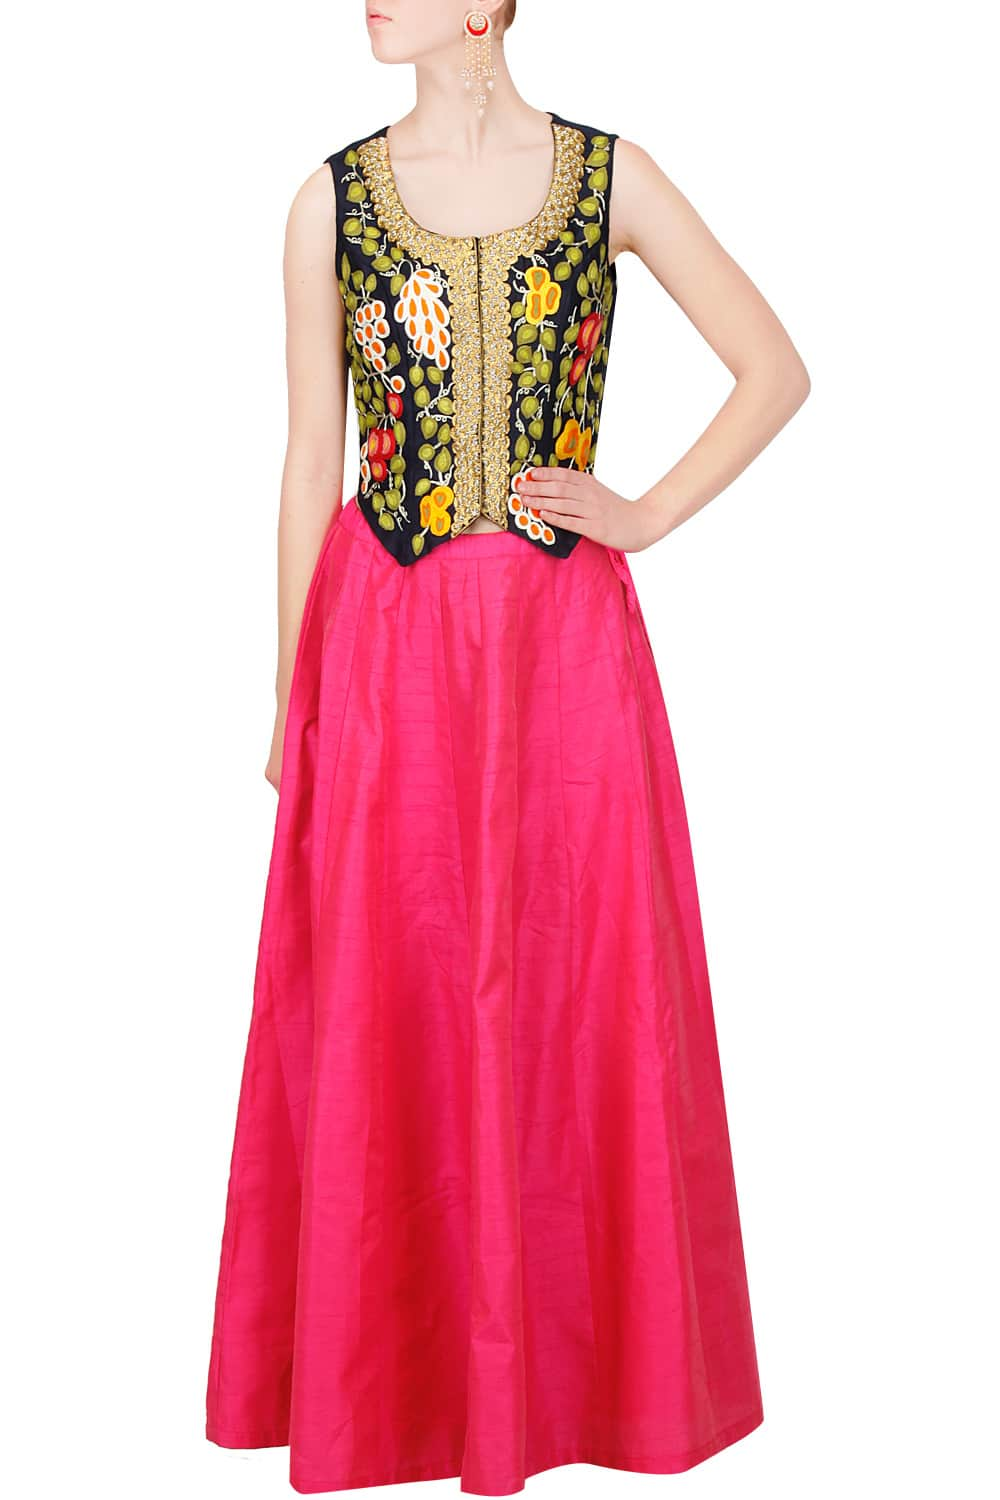 navy fruit embroidered waistcoat with pink skirt